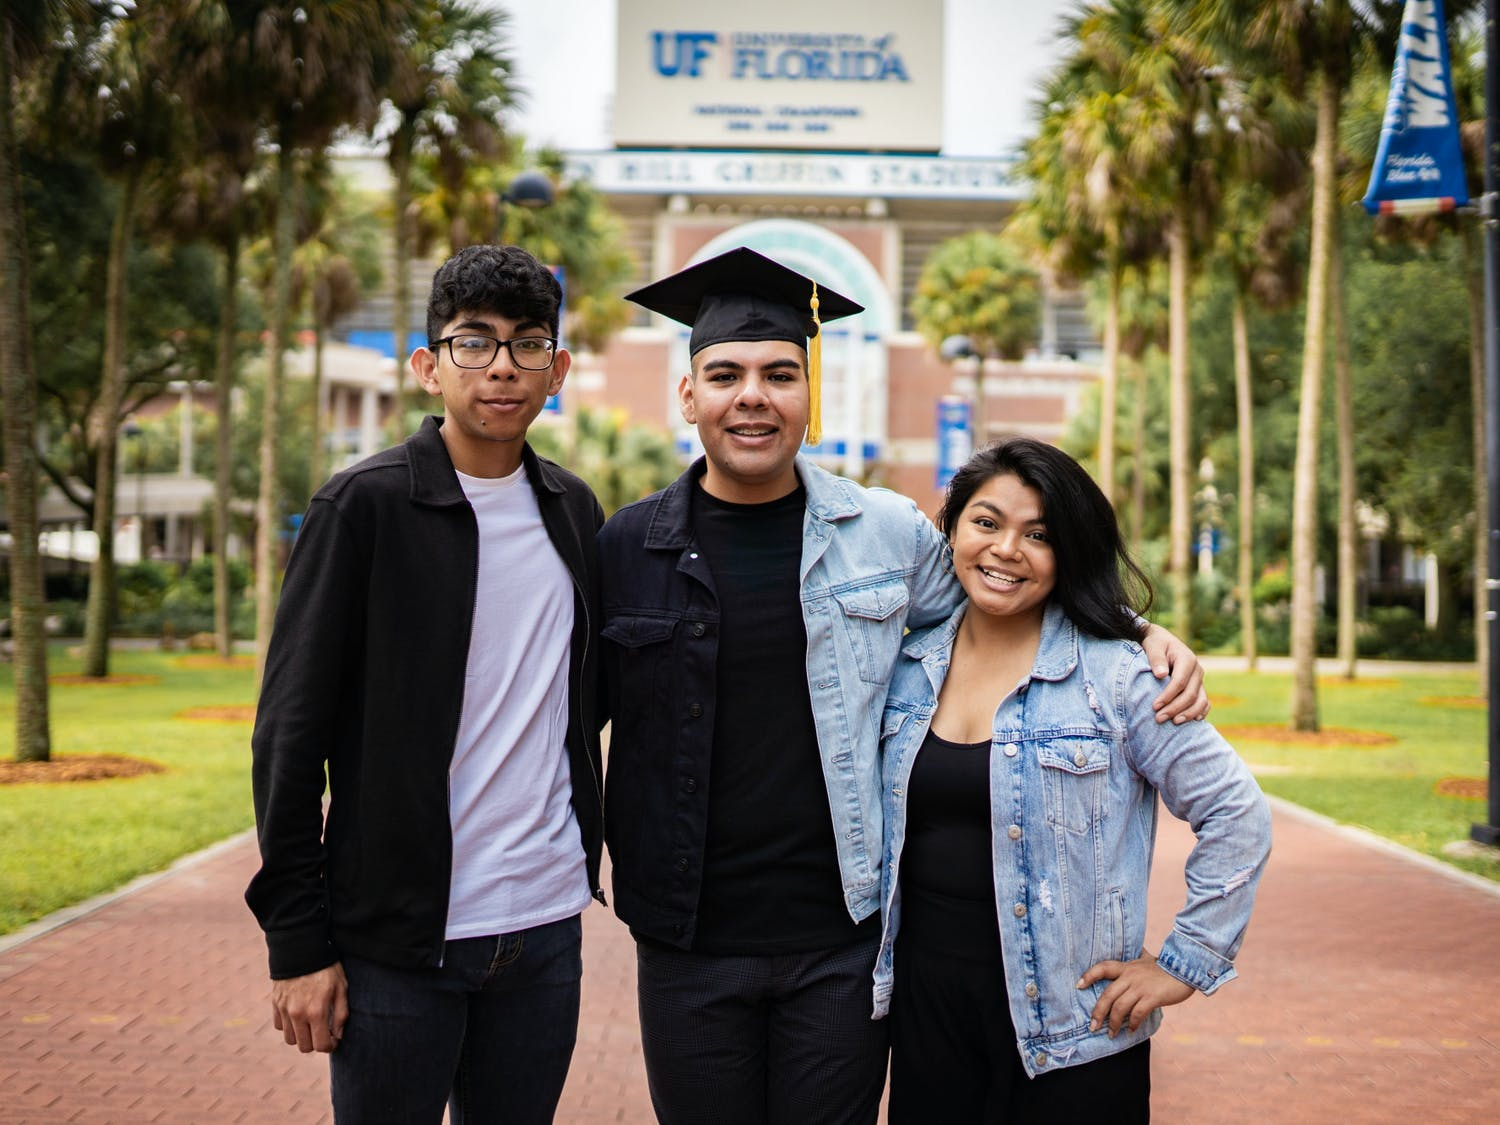 Jose Alvarez, center, and siblings David and Ismelda Alvarez, left and right, celebrate Jose's graduation from the University of Florida in front of the Ben Hill Griffin Stadium.